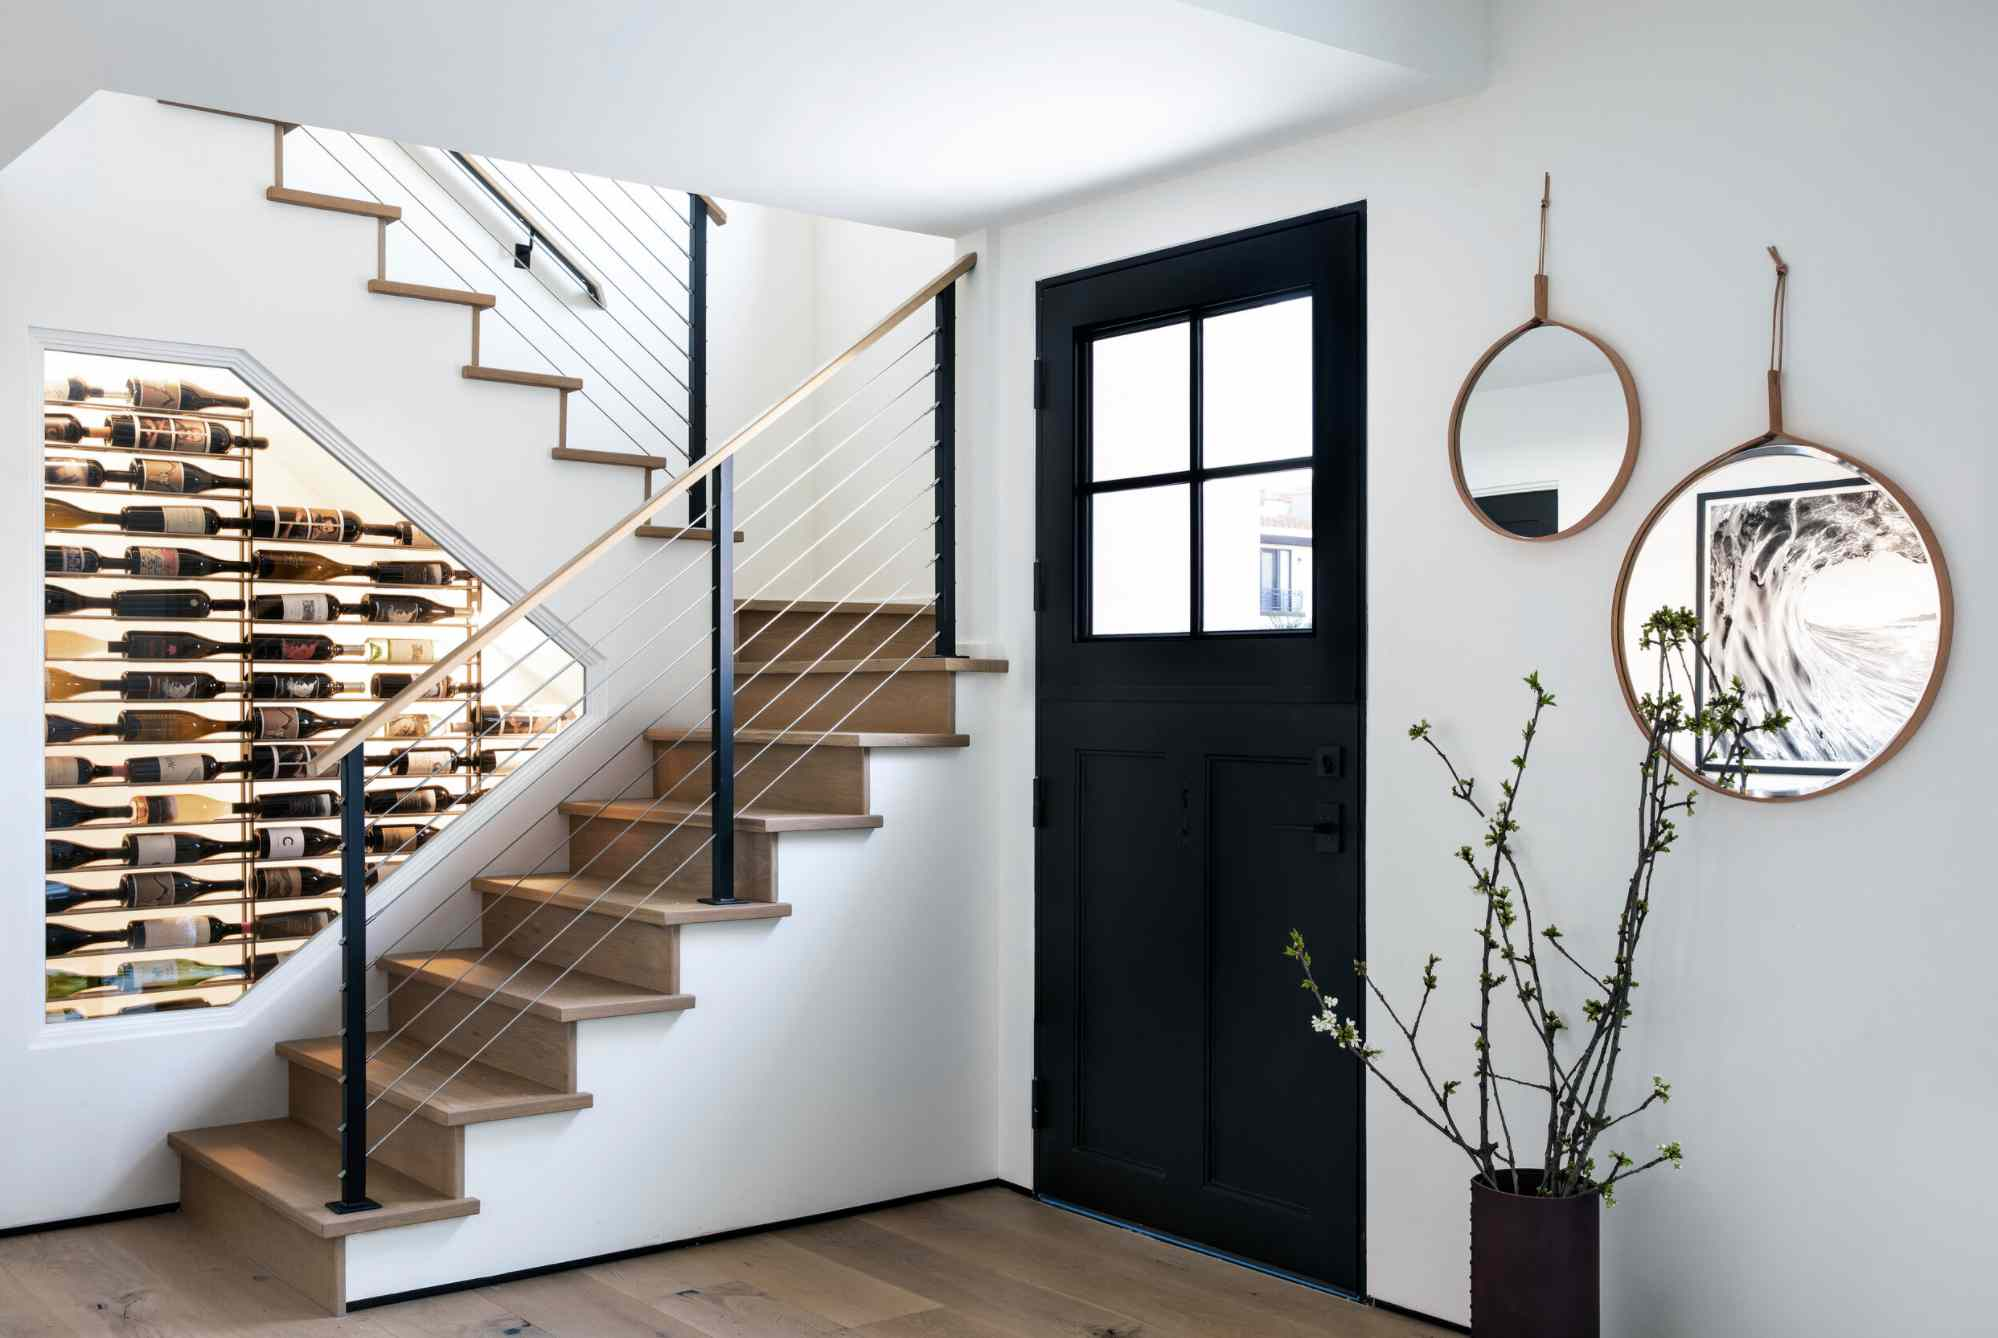 entryway with black door, white walls, stairs with a wine collection displayed inside the wall